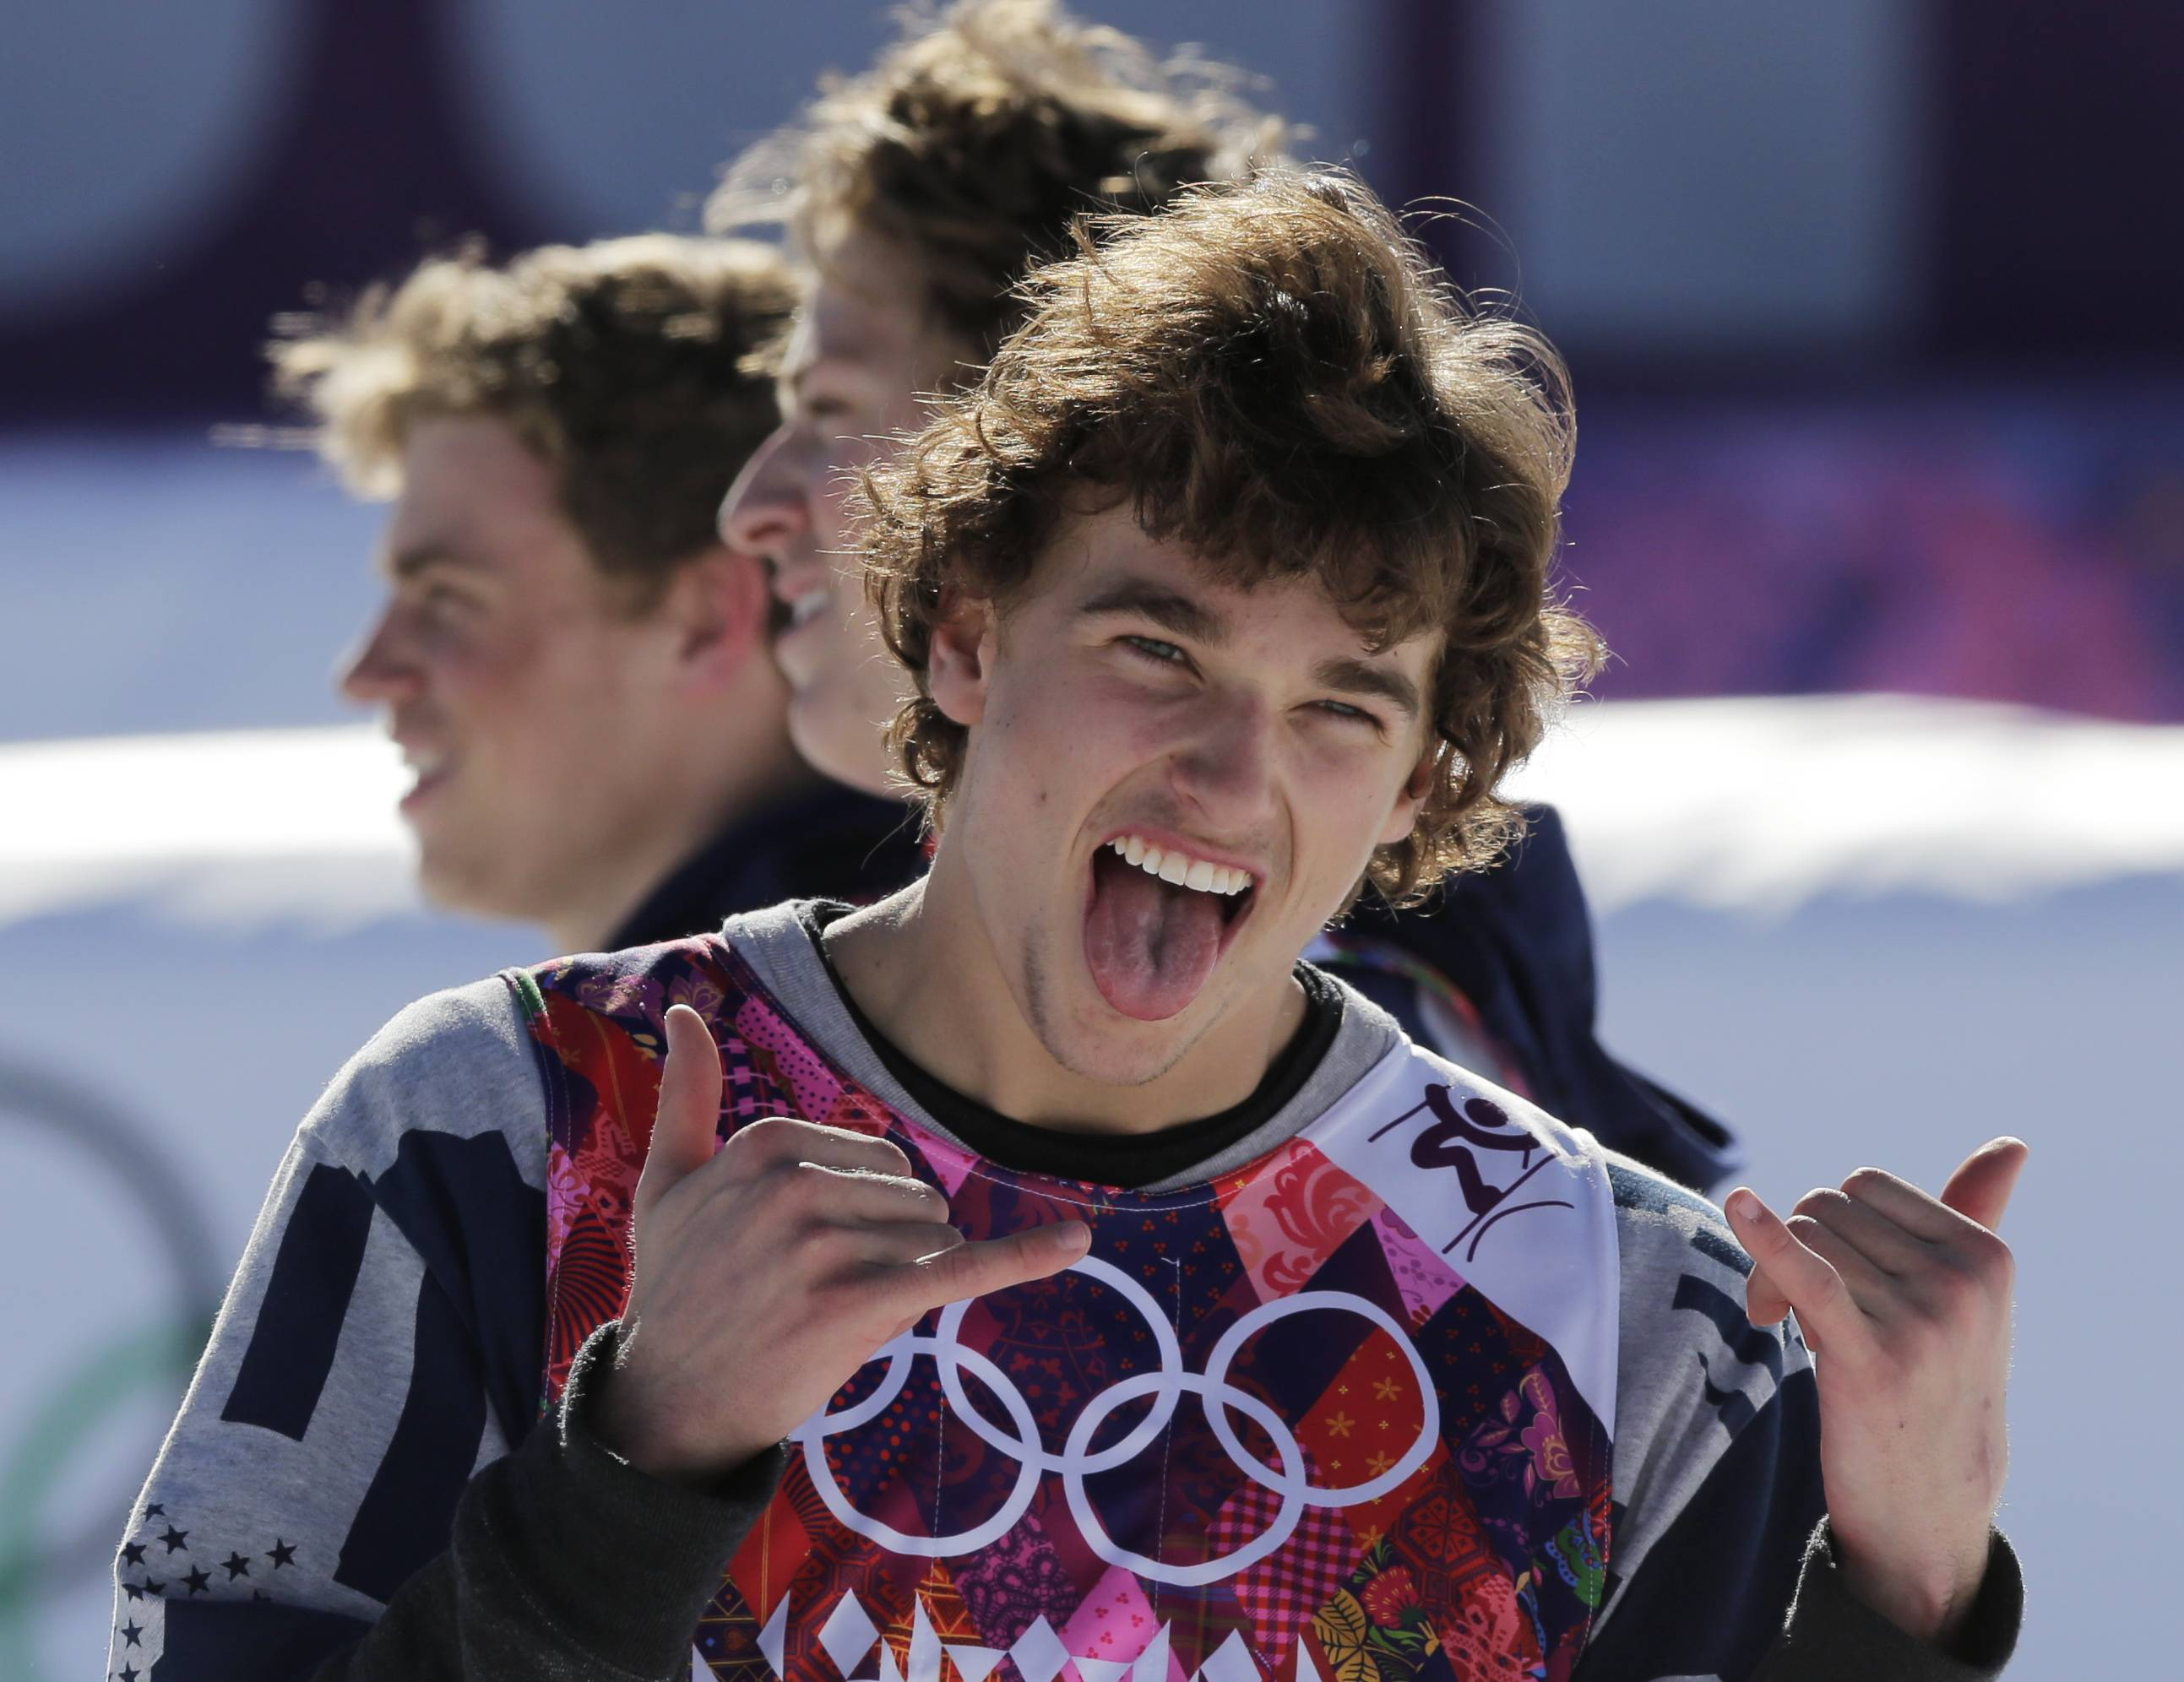 Nicholas Goepper of the United States celebrates his bronze medal Thursday in men's slopestyle skiing at the Rosa Khutor Extreme Park at the 2014 Winter Olympics in Krasnaya Polyana, Russia. Behind him are teammates Gus Kenworthy, left, who won silver, and Joss Christensen, who won gold.